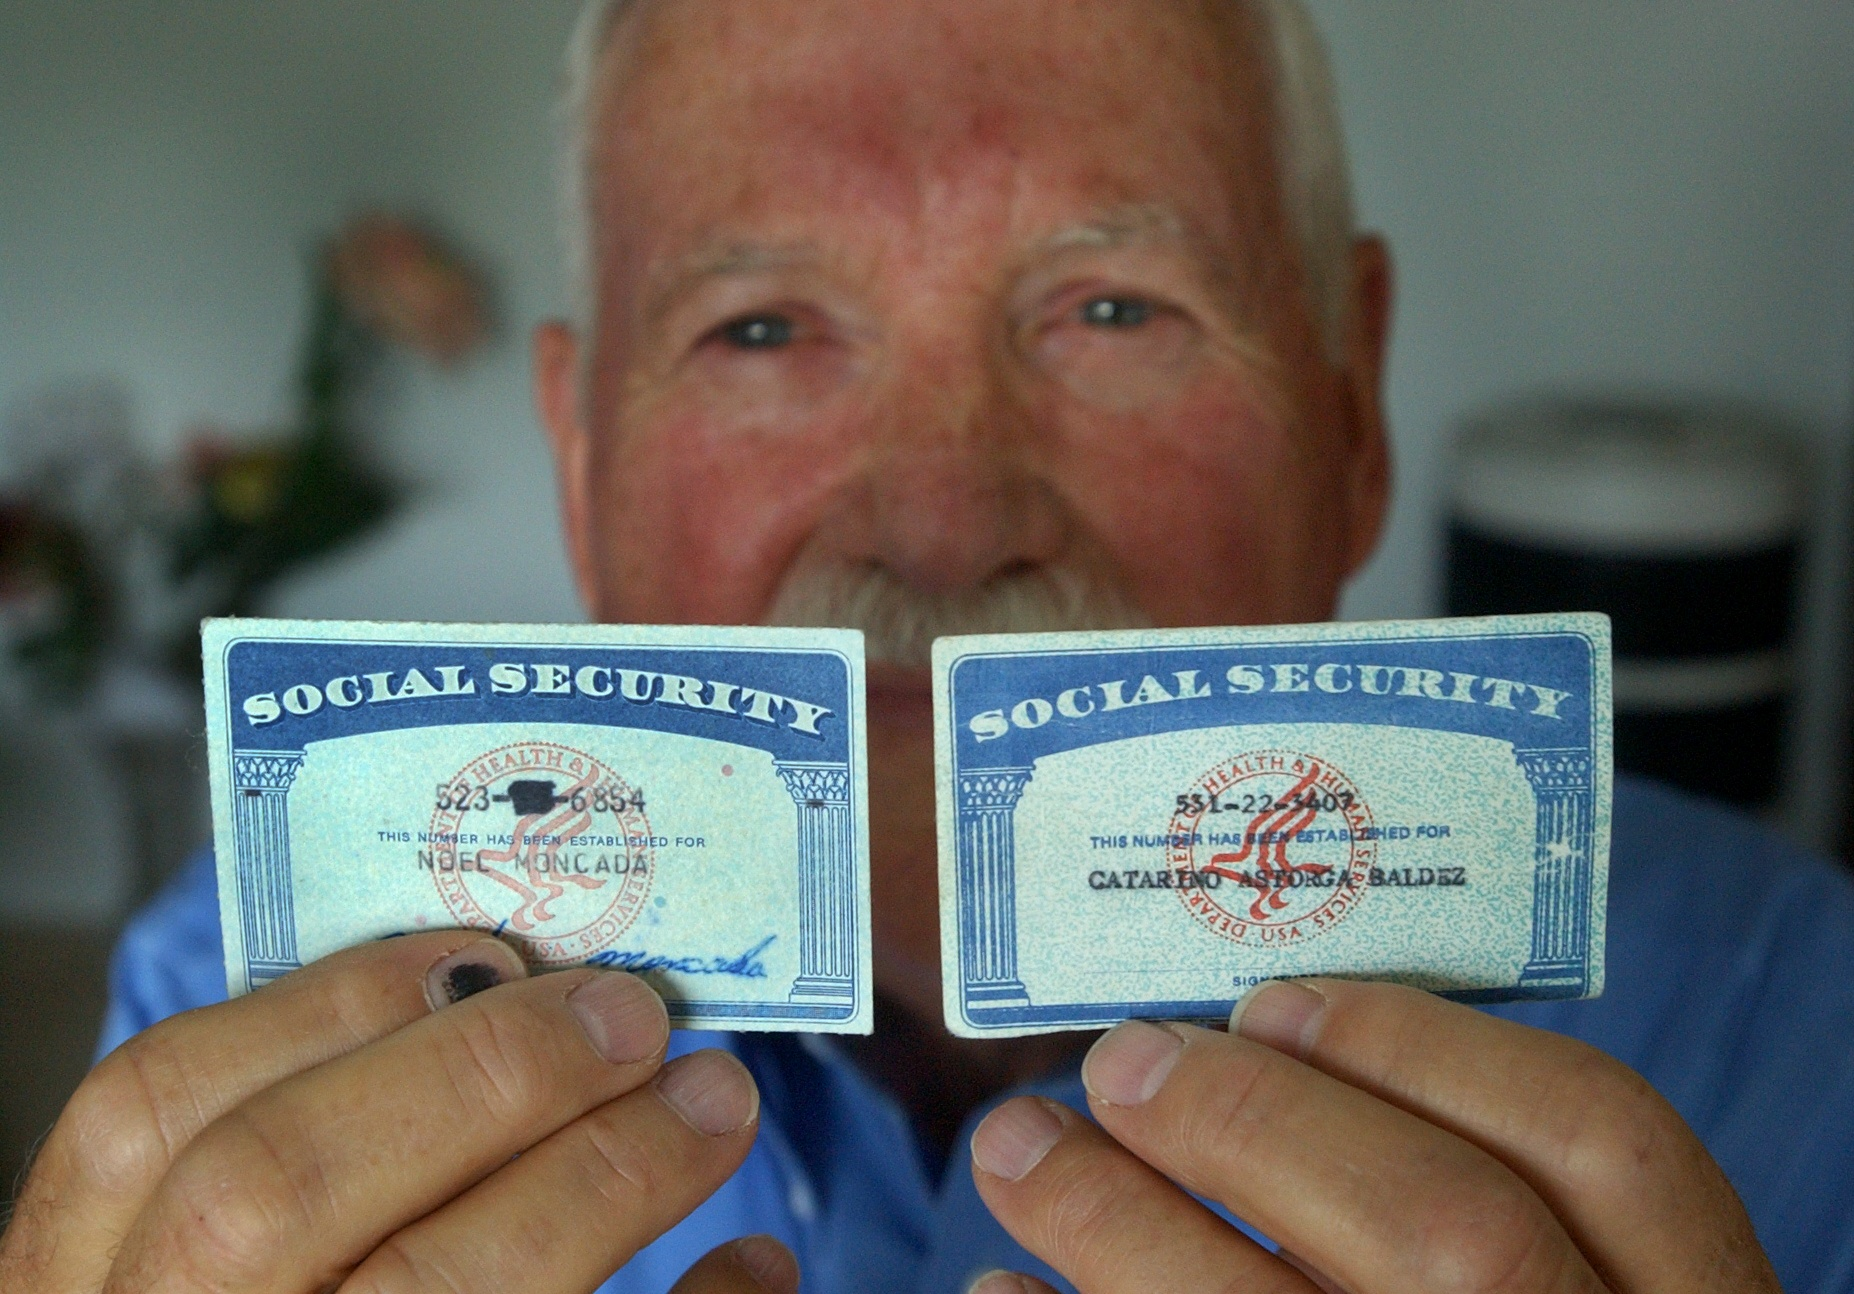 A man holds up two social security cards, one real and one fake.